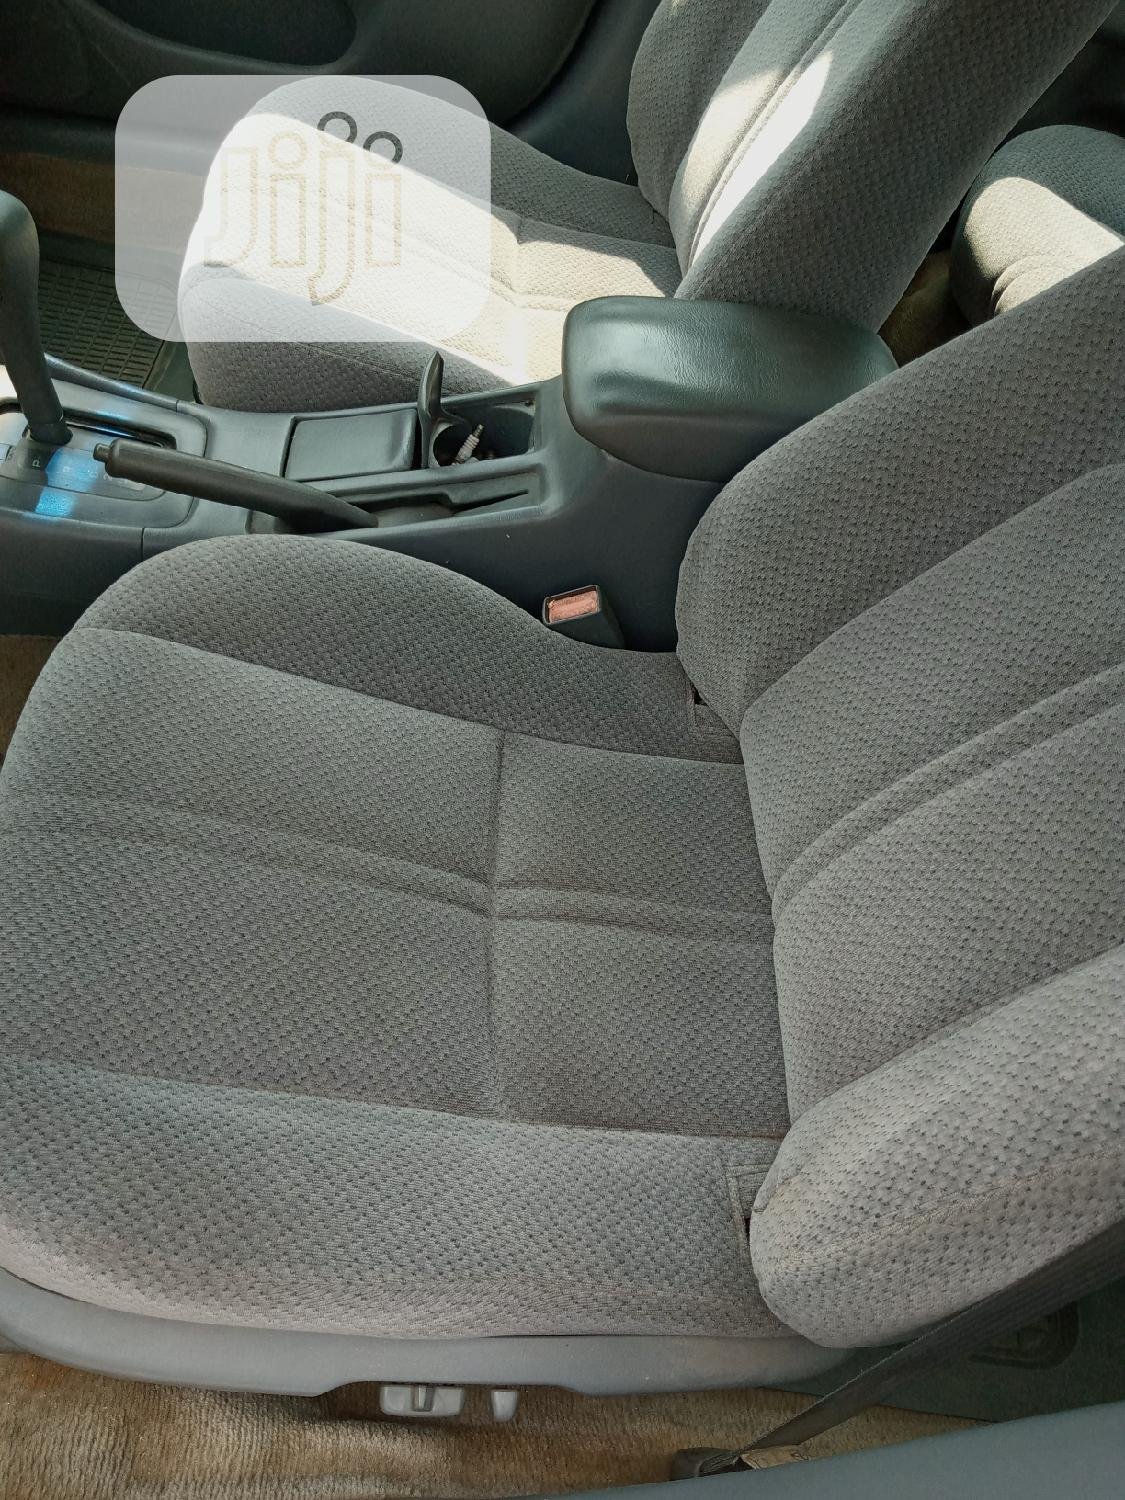 Toyota Camry 2001 Gold | Cars for sale in Amuwo-Odofin, Lagos State, Nigeria